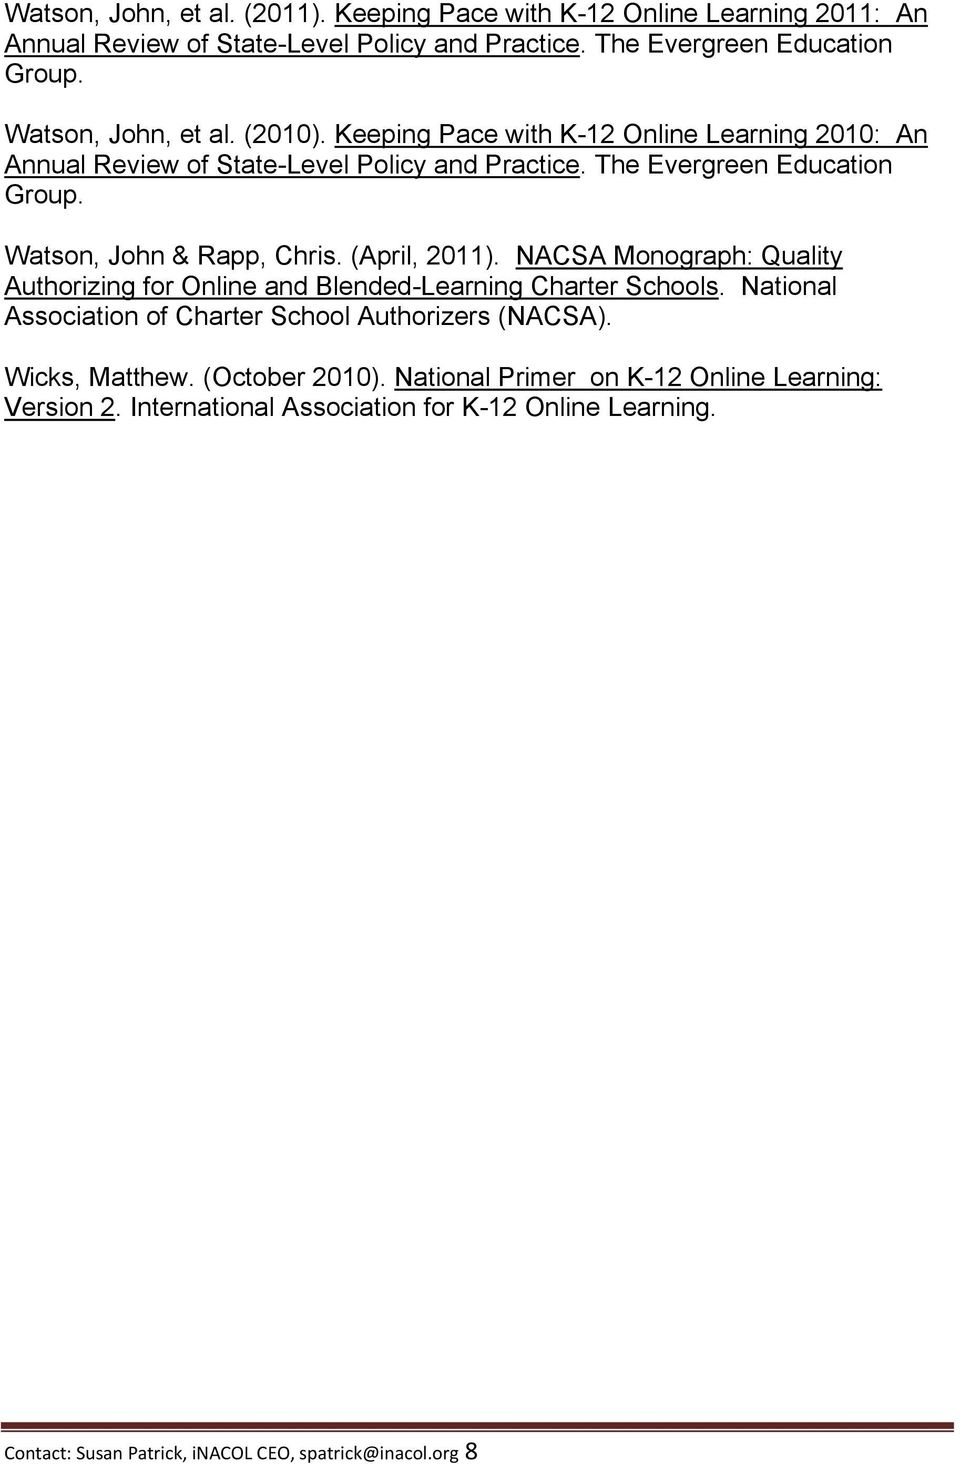 Watson, John & Rapp, Chris. (April, 2011). NACSA Monograph: Quality Authorizing for Online and Blended-Learning Charter Schools.